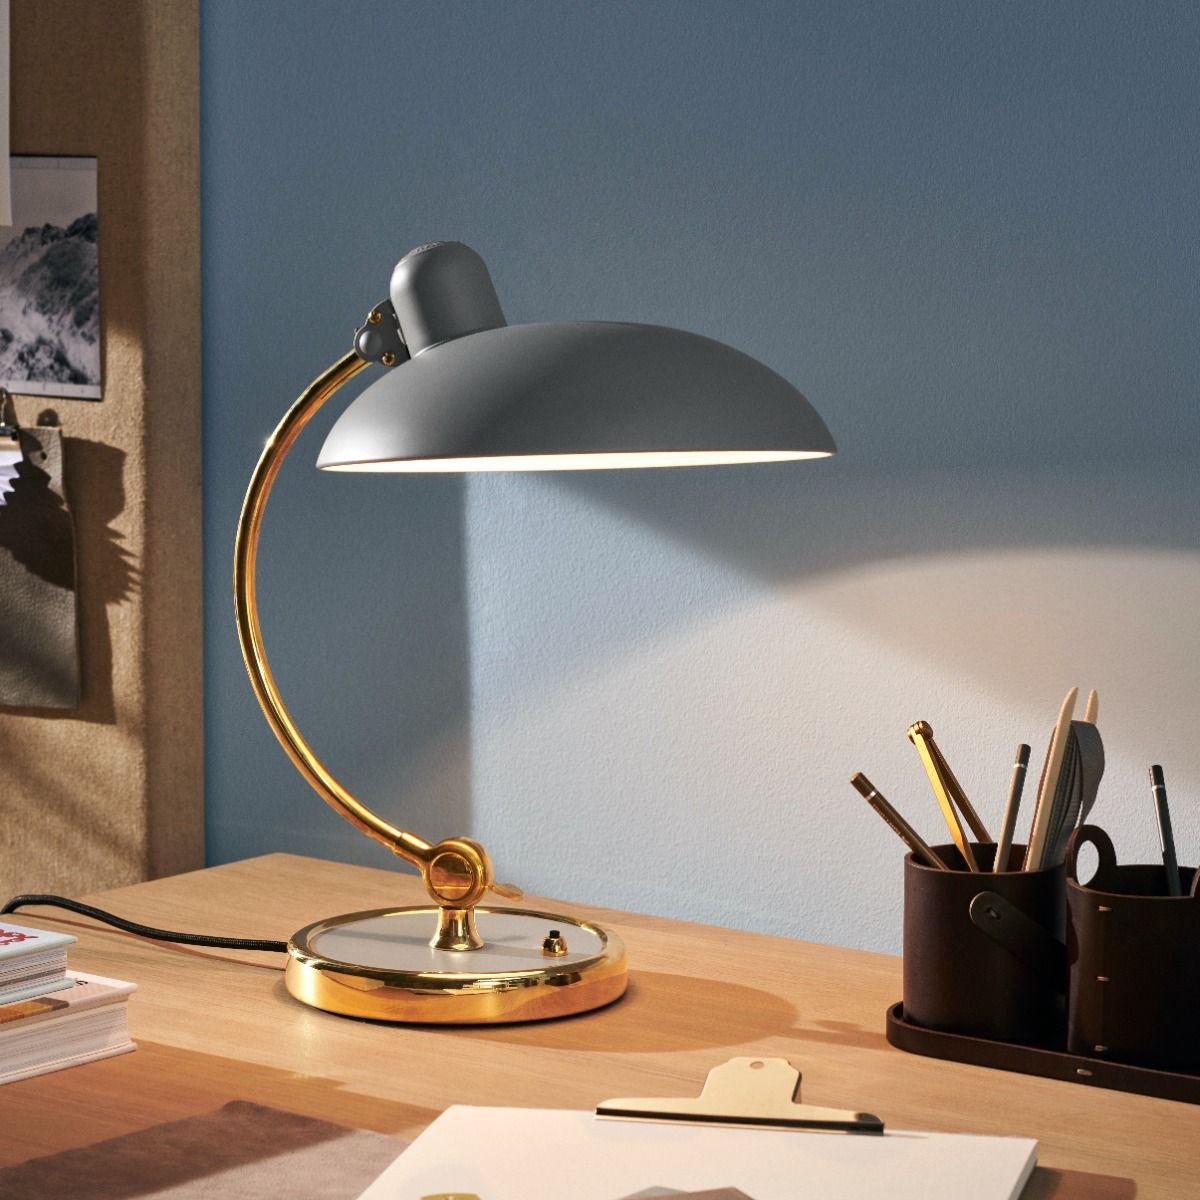 Kaiser Idell6631-T Luxus in brass, and easy grey on a desk